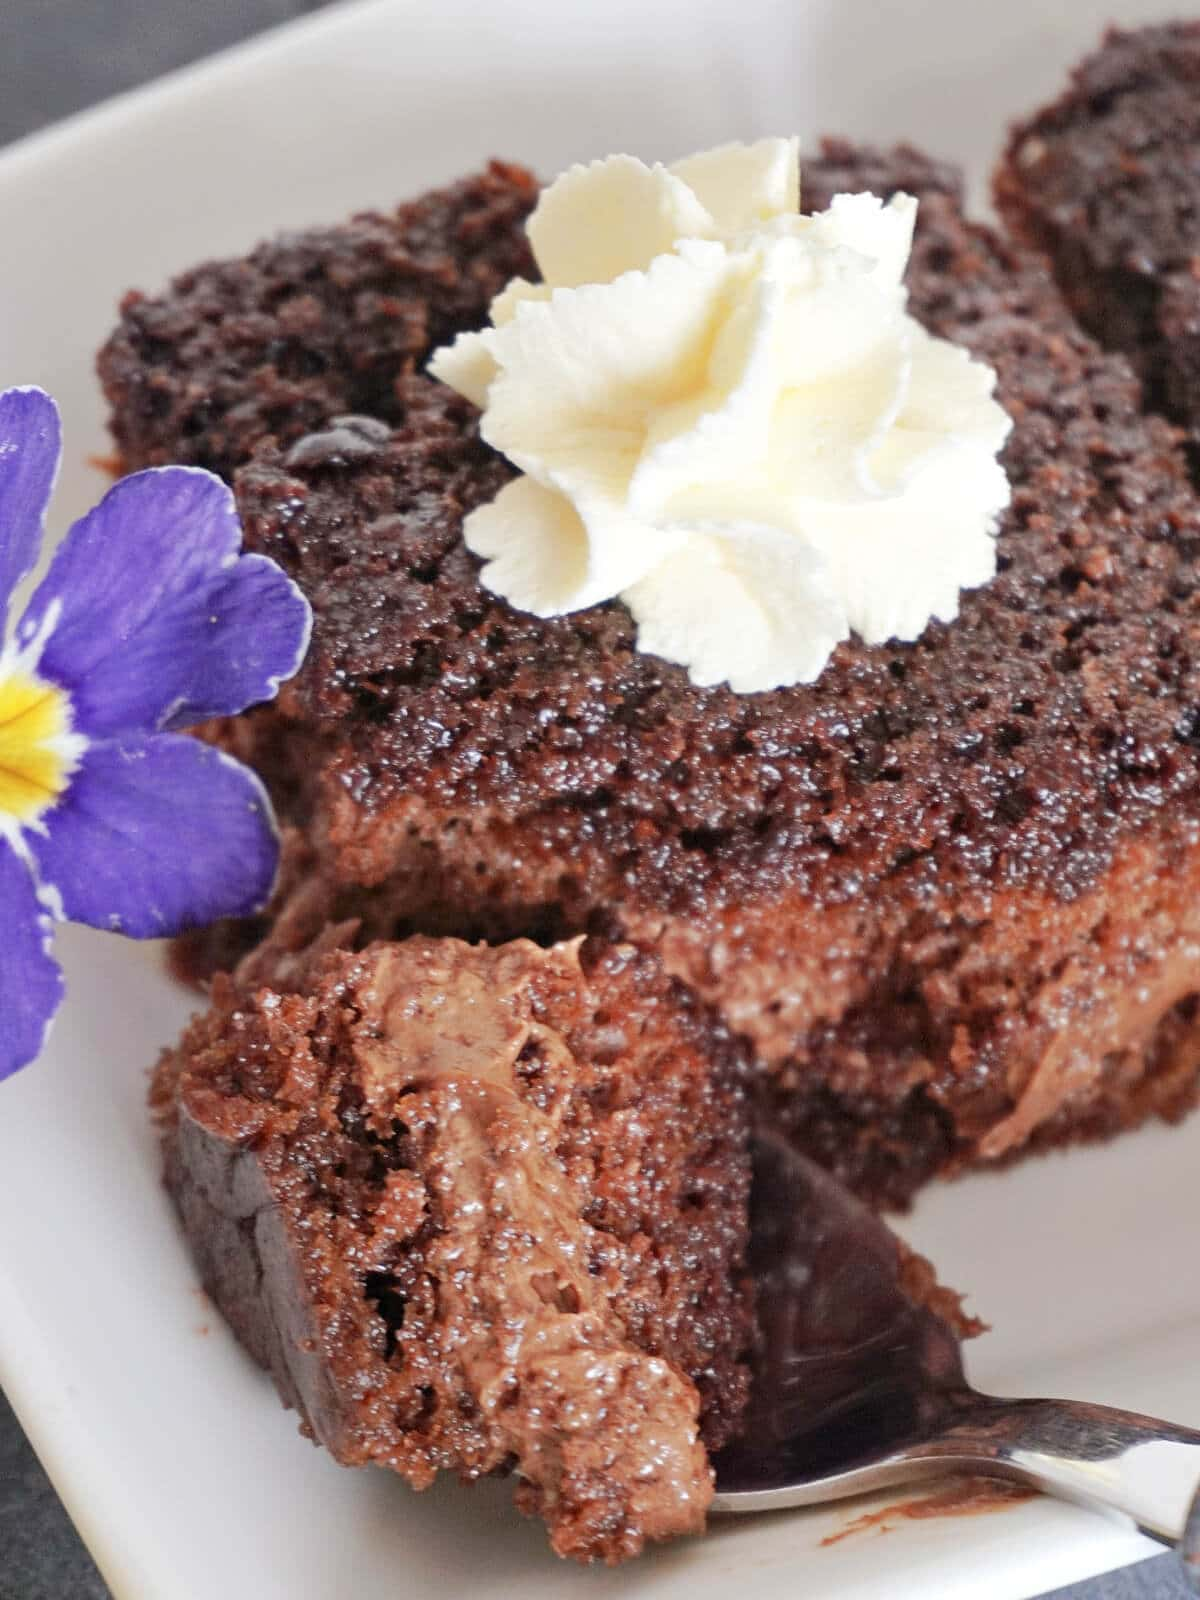 Close-up shot of a slice of chocolate and nutella cake